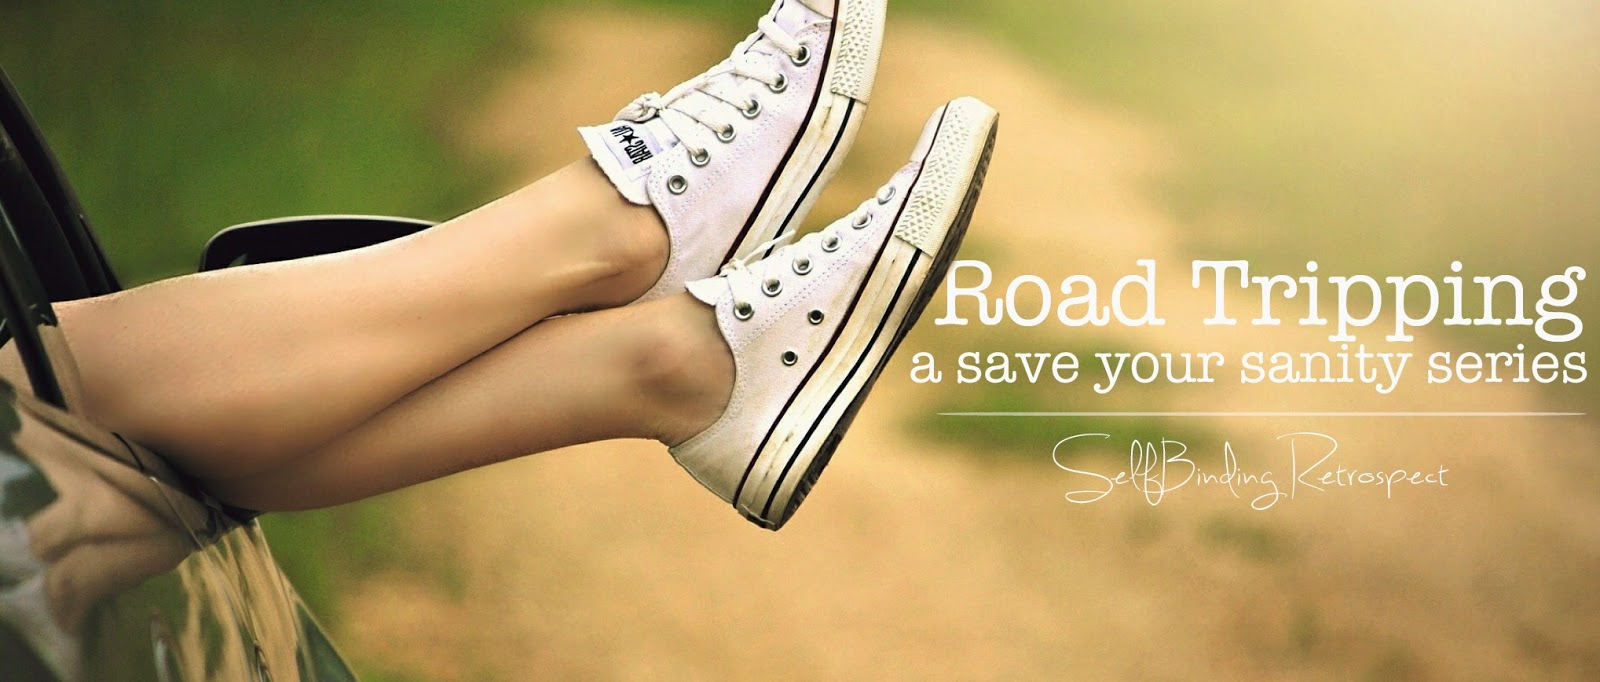 Road Tripping {a save your sanity series} - 10 easy ways to make a road trip better